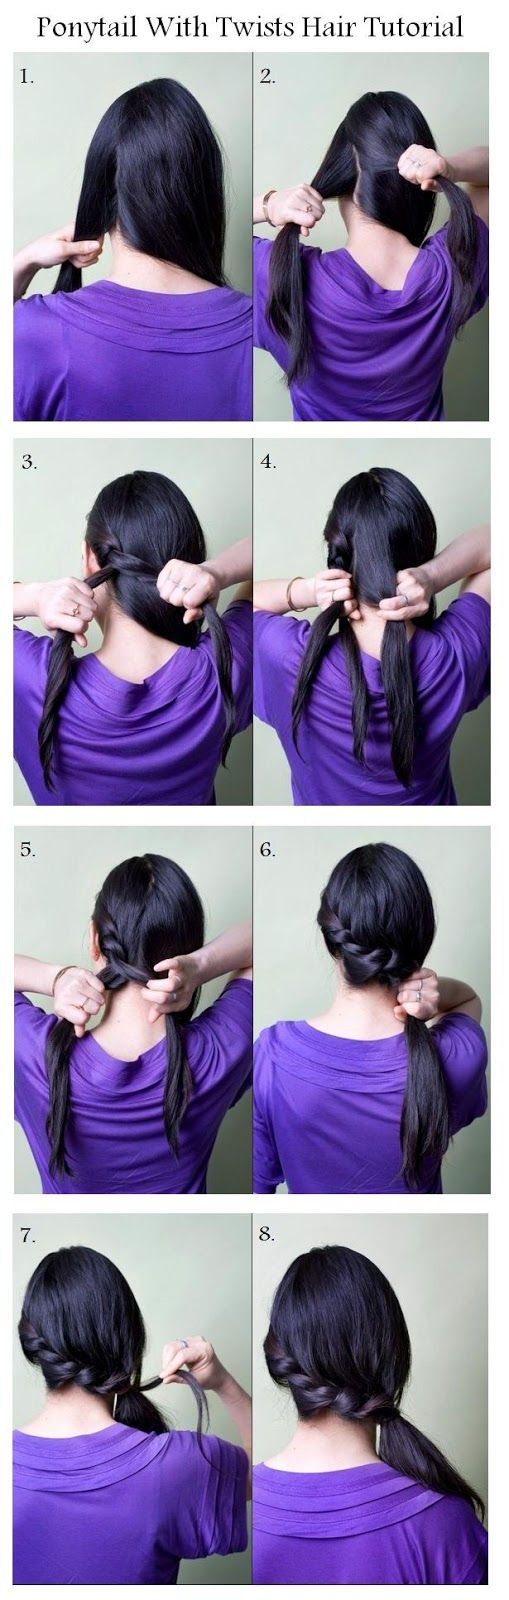 Make A Ponytail With Twists For Your Hair